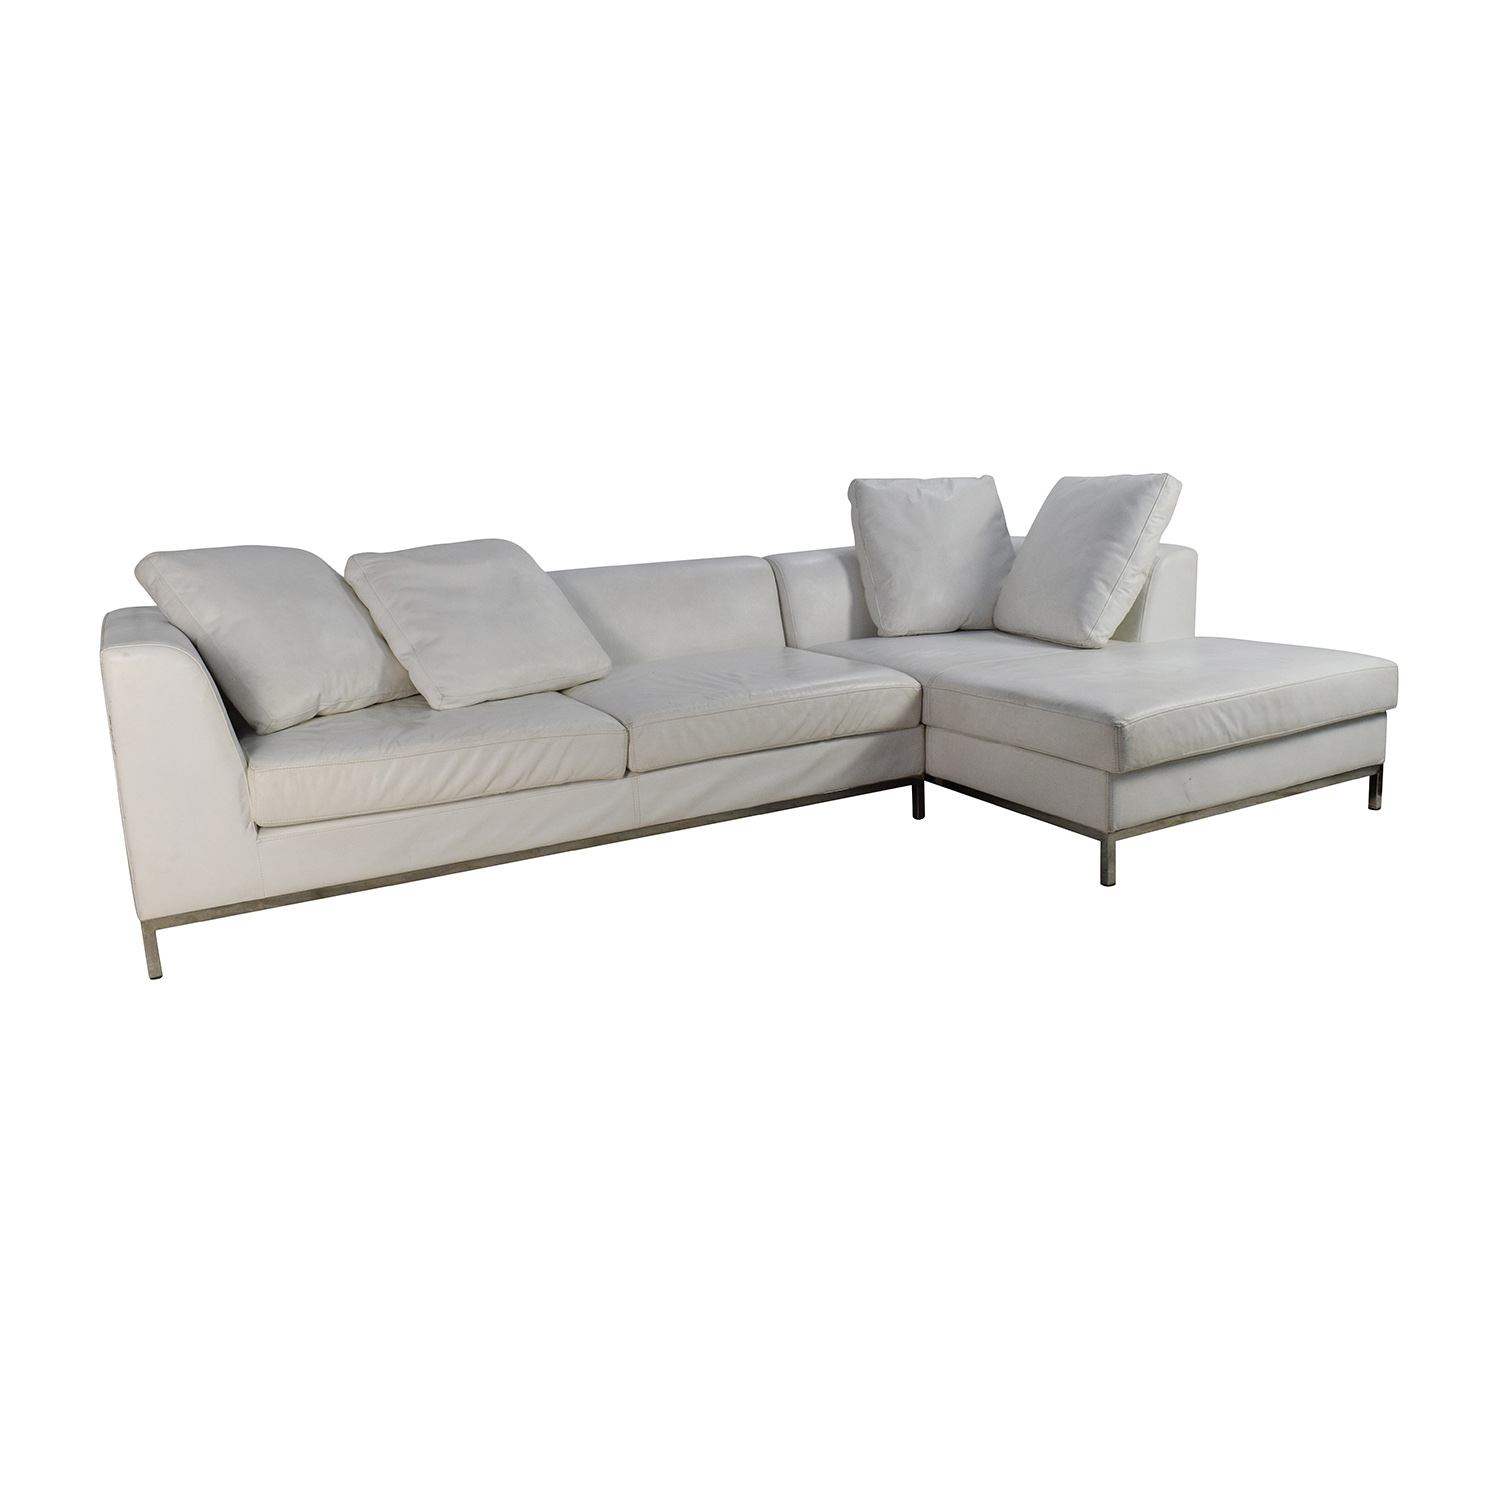 82 off white leather sectional couch sofas. Black Bedroom Furniture Sets. Home Design Ideas